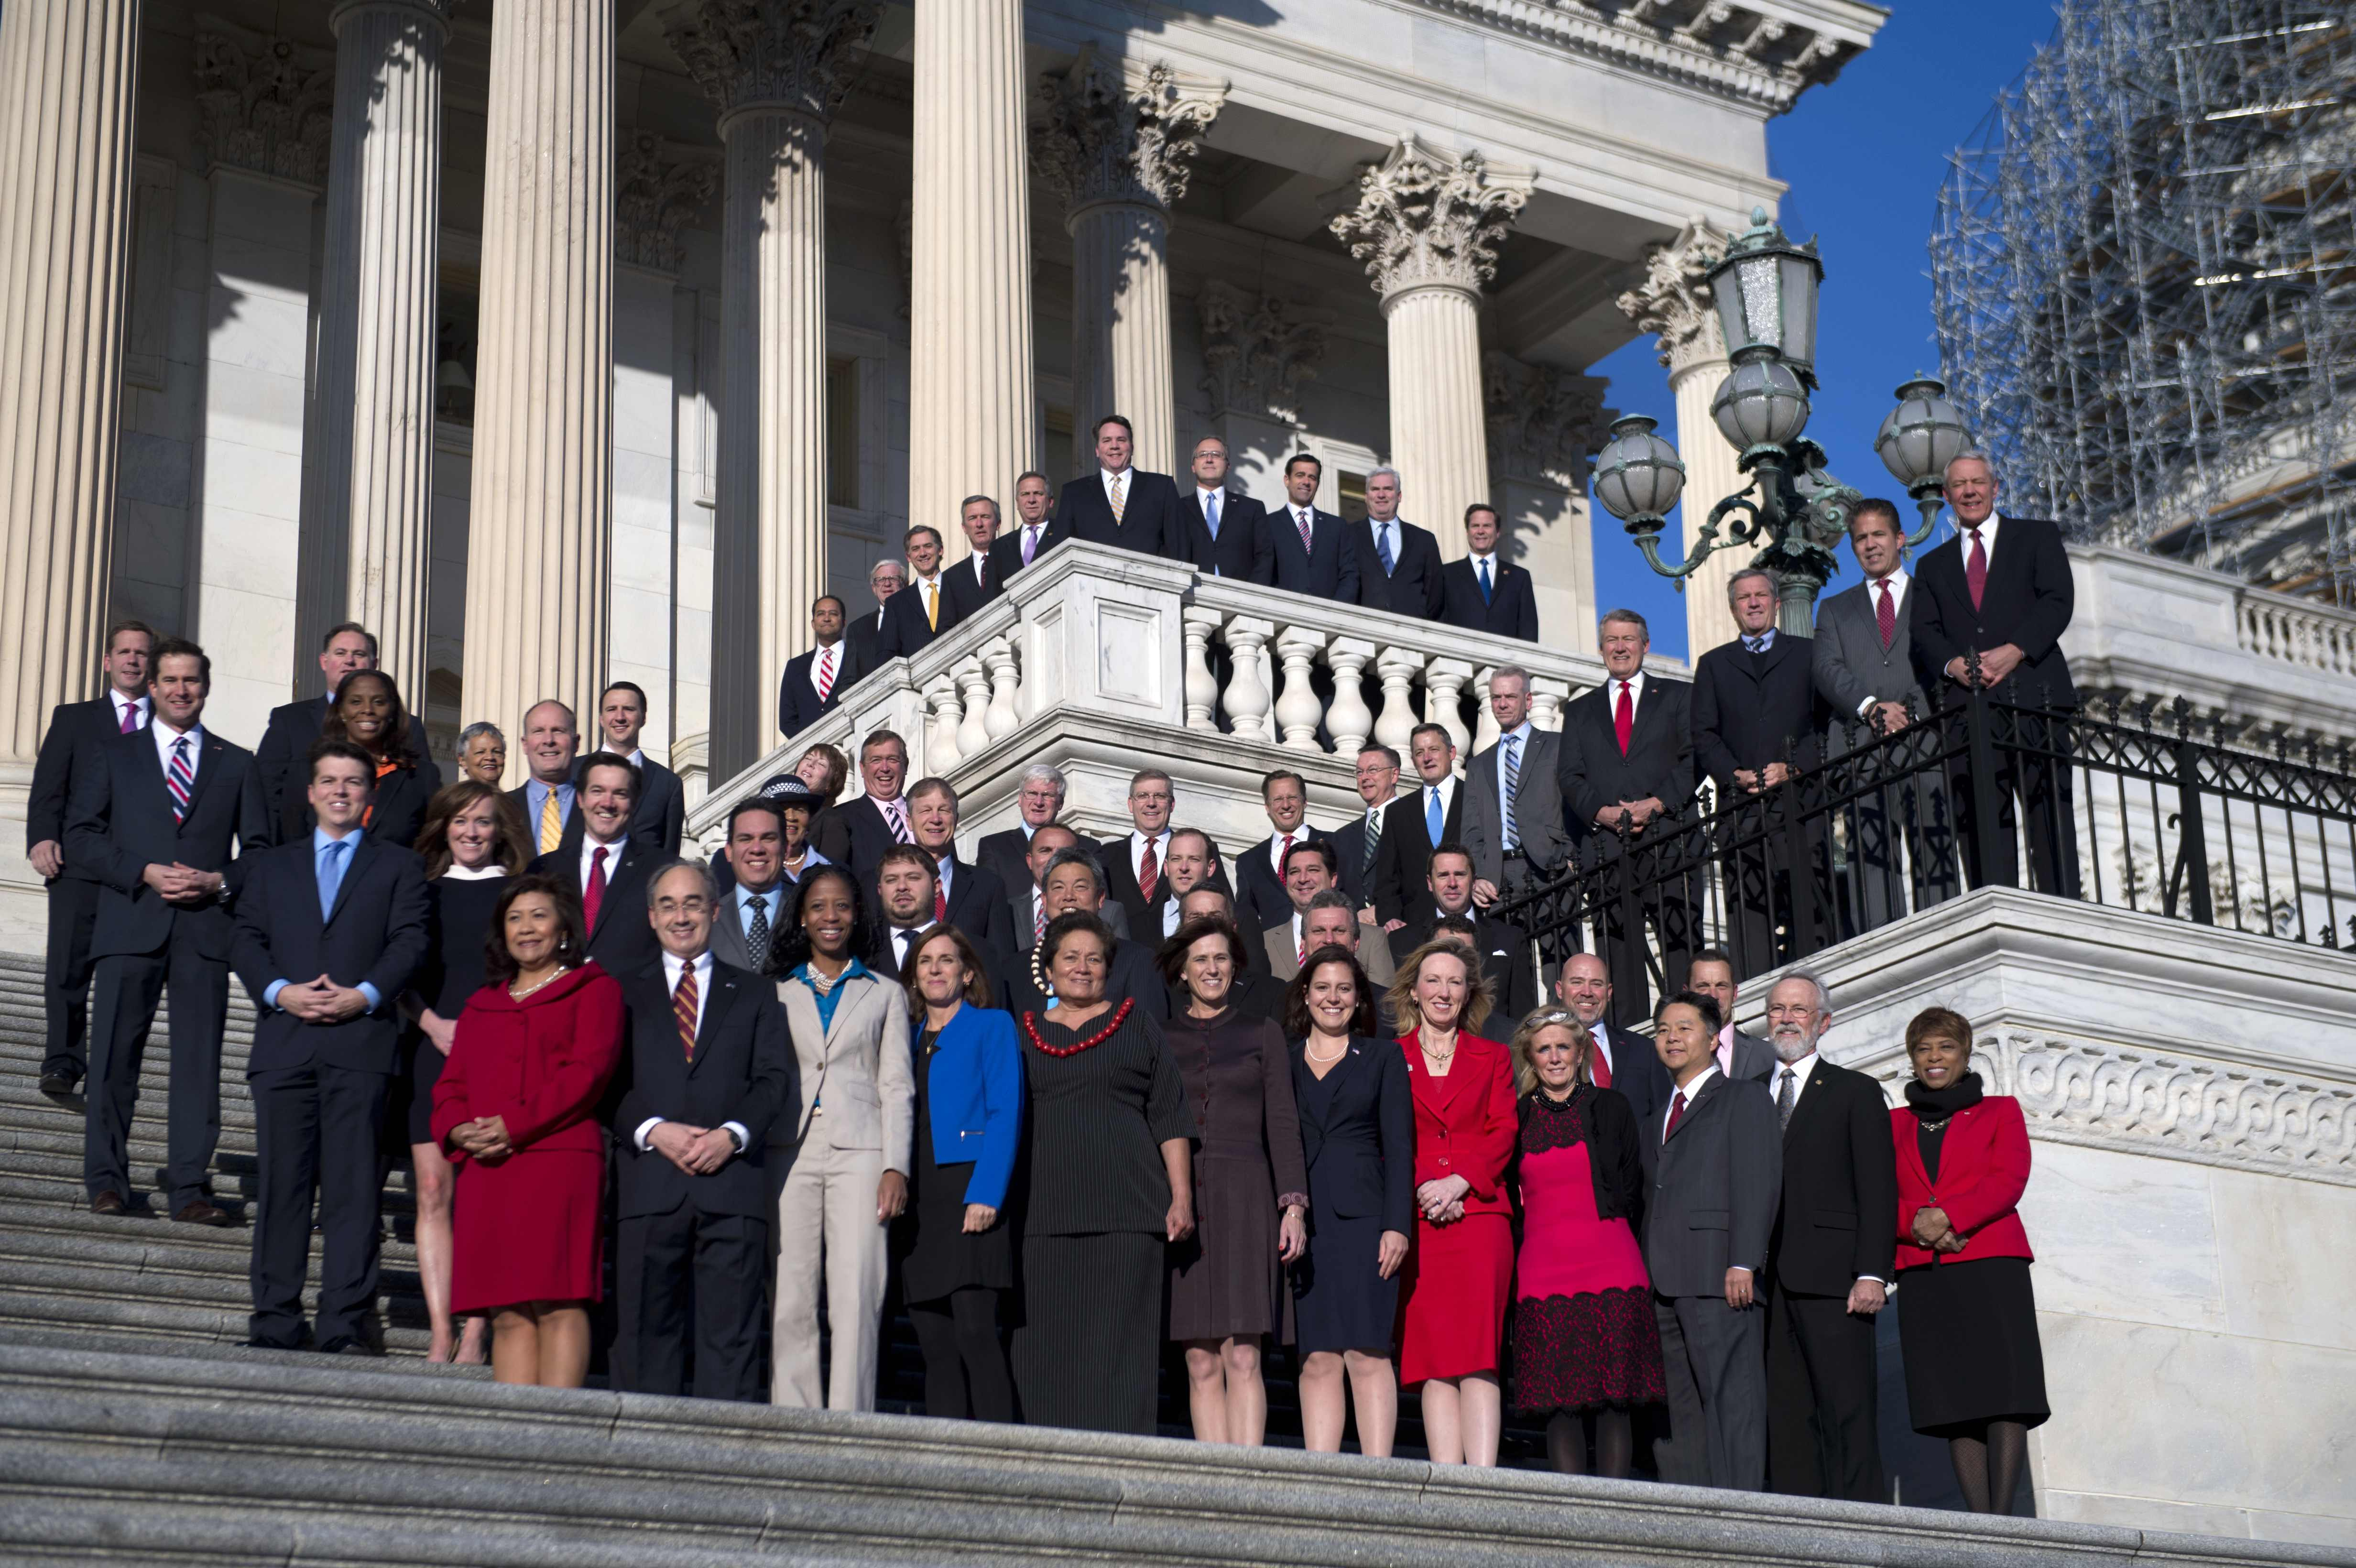 essays on us congress Ap essay- congress the framers of the constitution created a bicameral legislation where there were two chambers of congress made there was the senate and the house of representatives and these two chambers split the necessary duties that congress needed to fulfill.